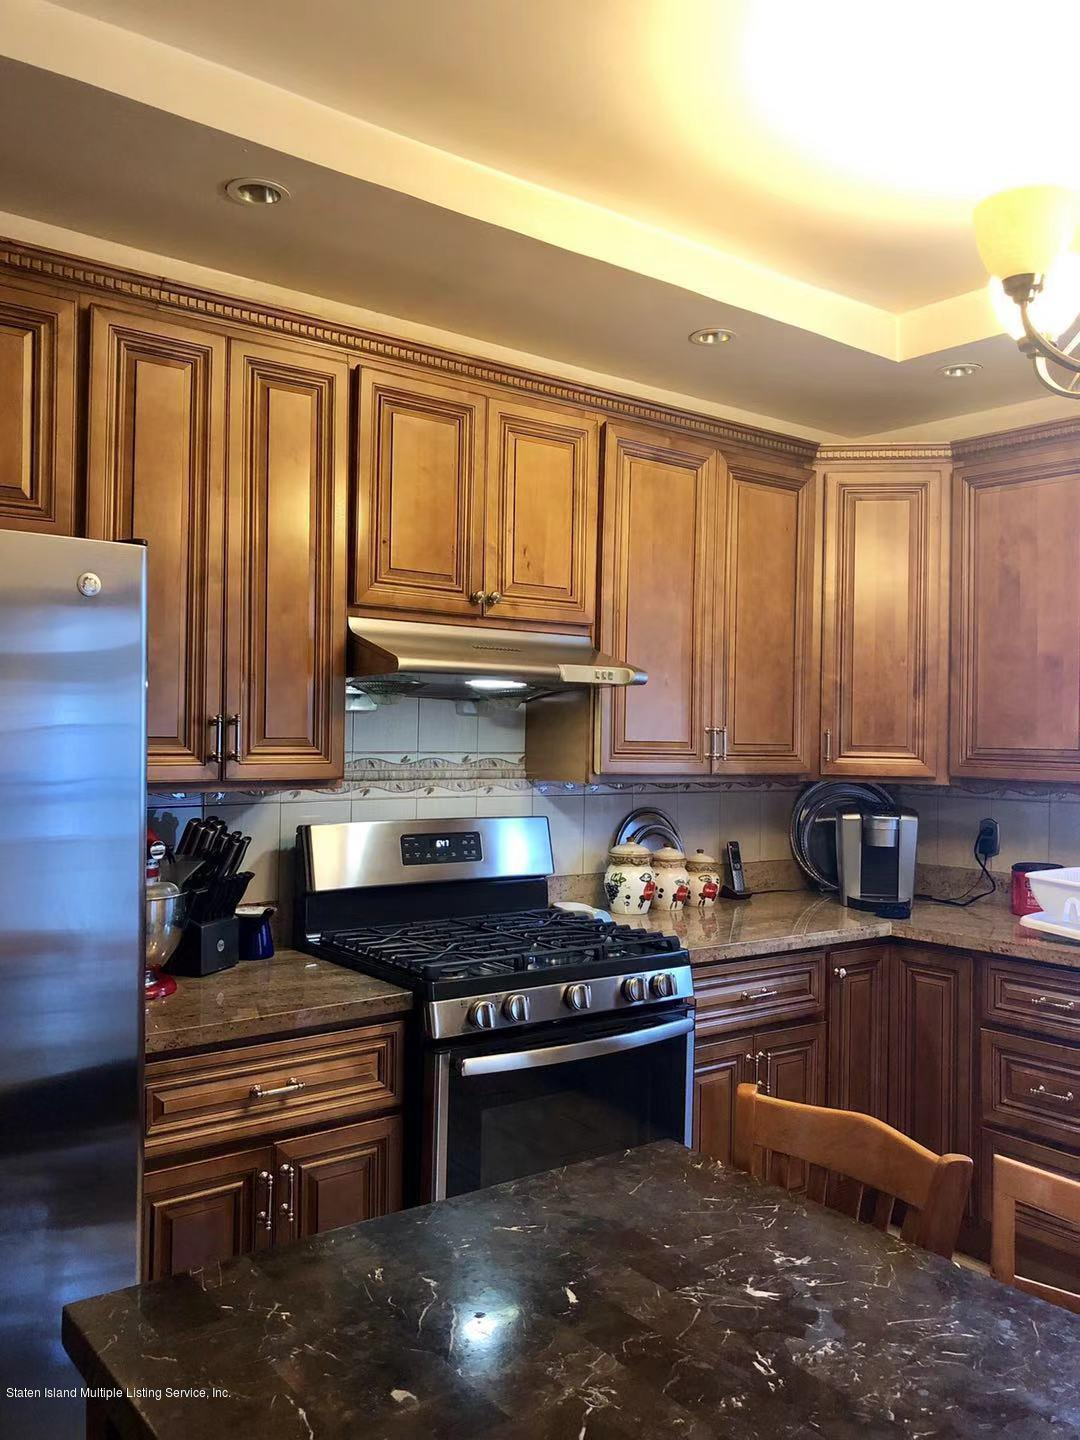 Single Family - Detached 1123 Forest Avenue  Staten Island, NY 10310, MLS-1131376-8